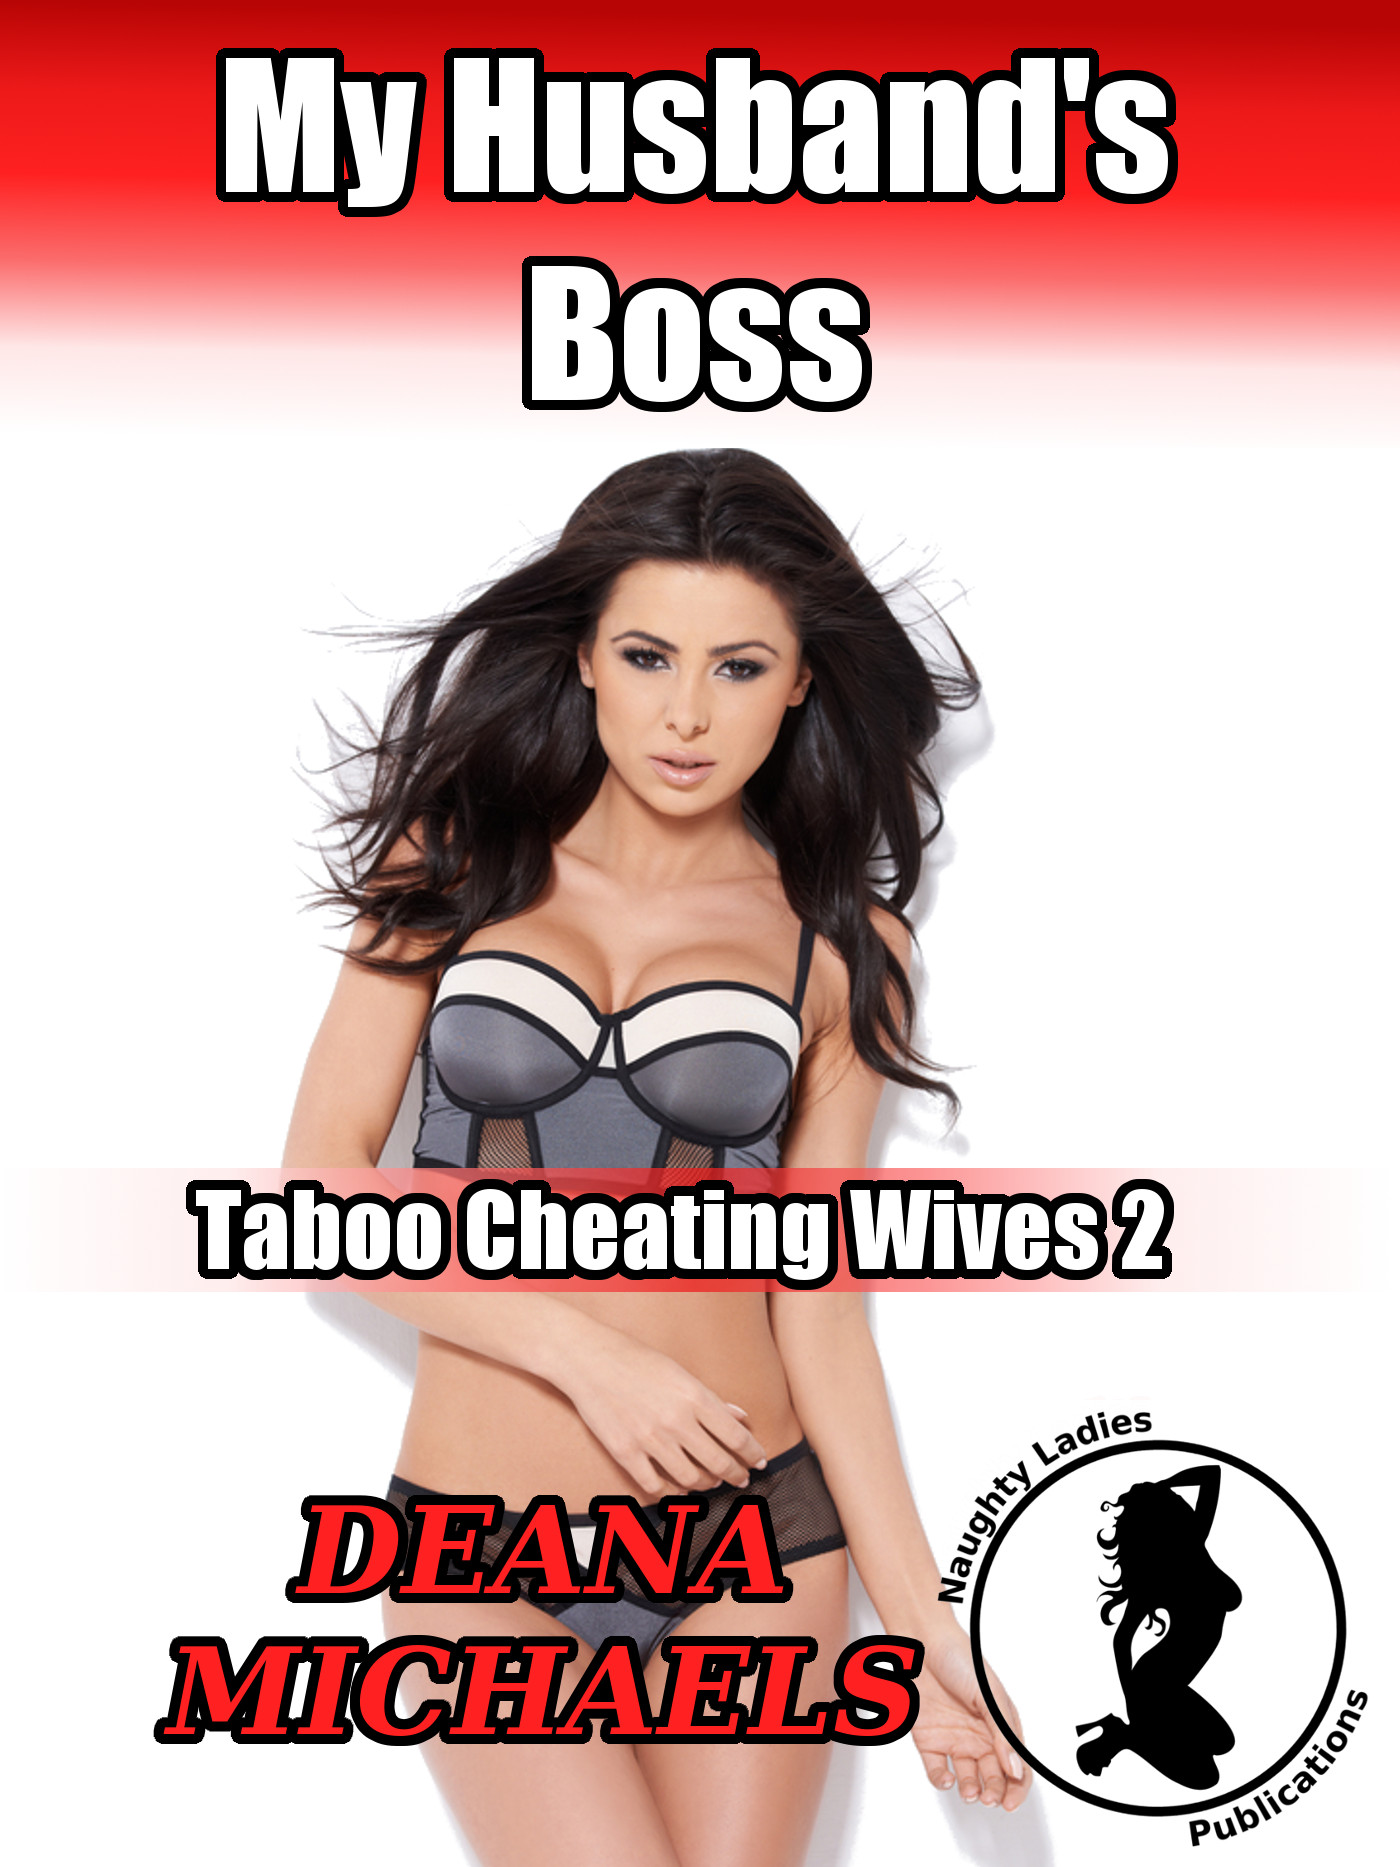 Deana Michaels - My Husband's Boss (Taboo Cheating Wives 2)